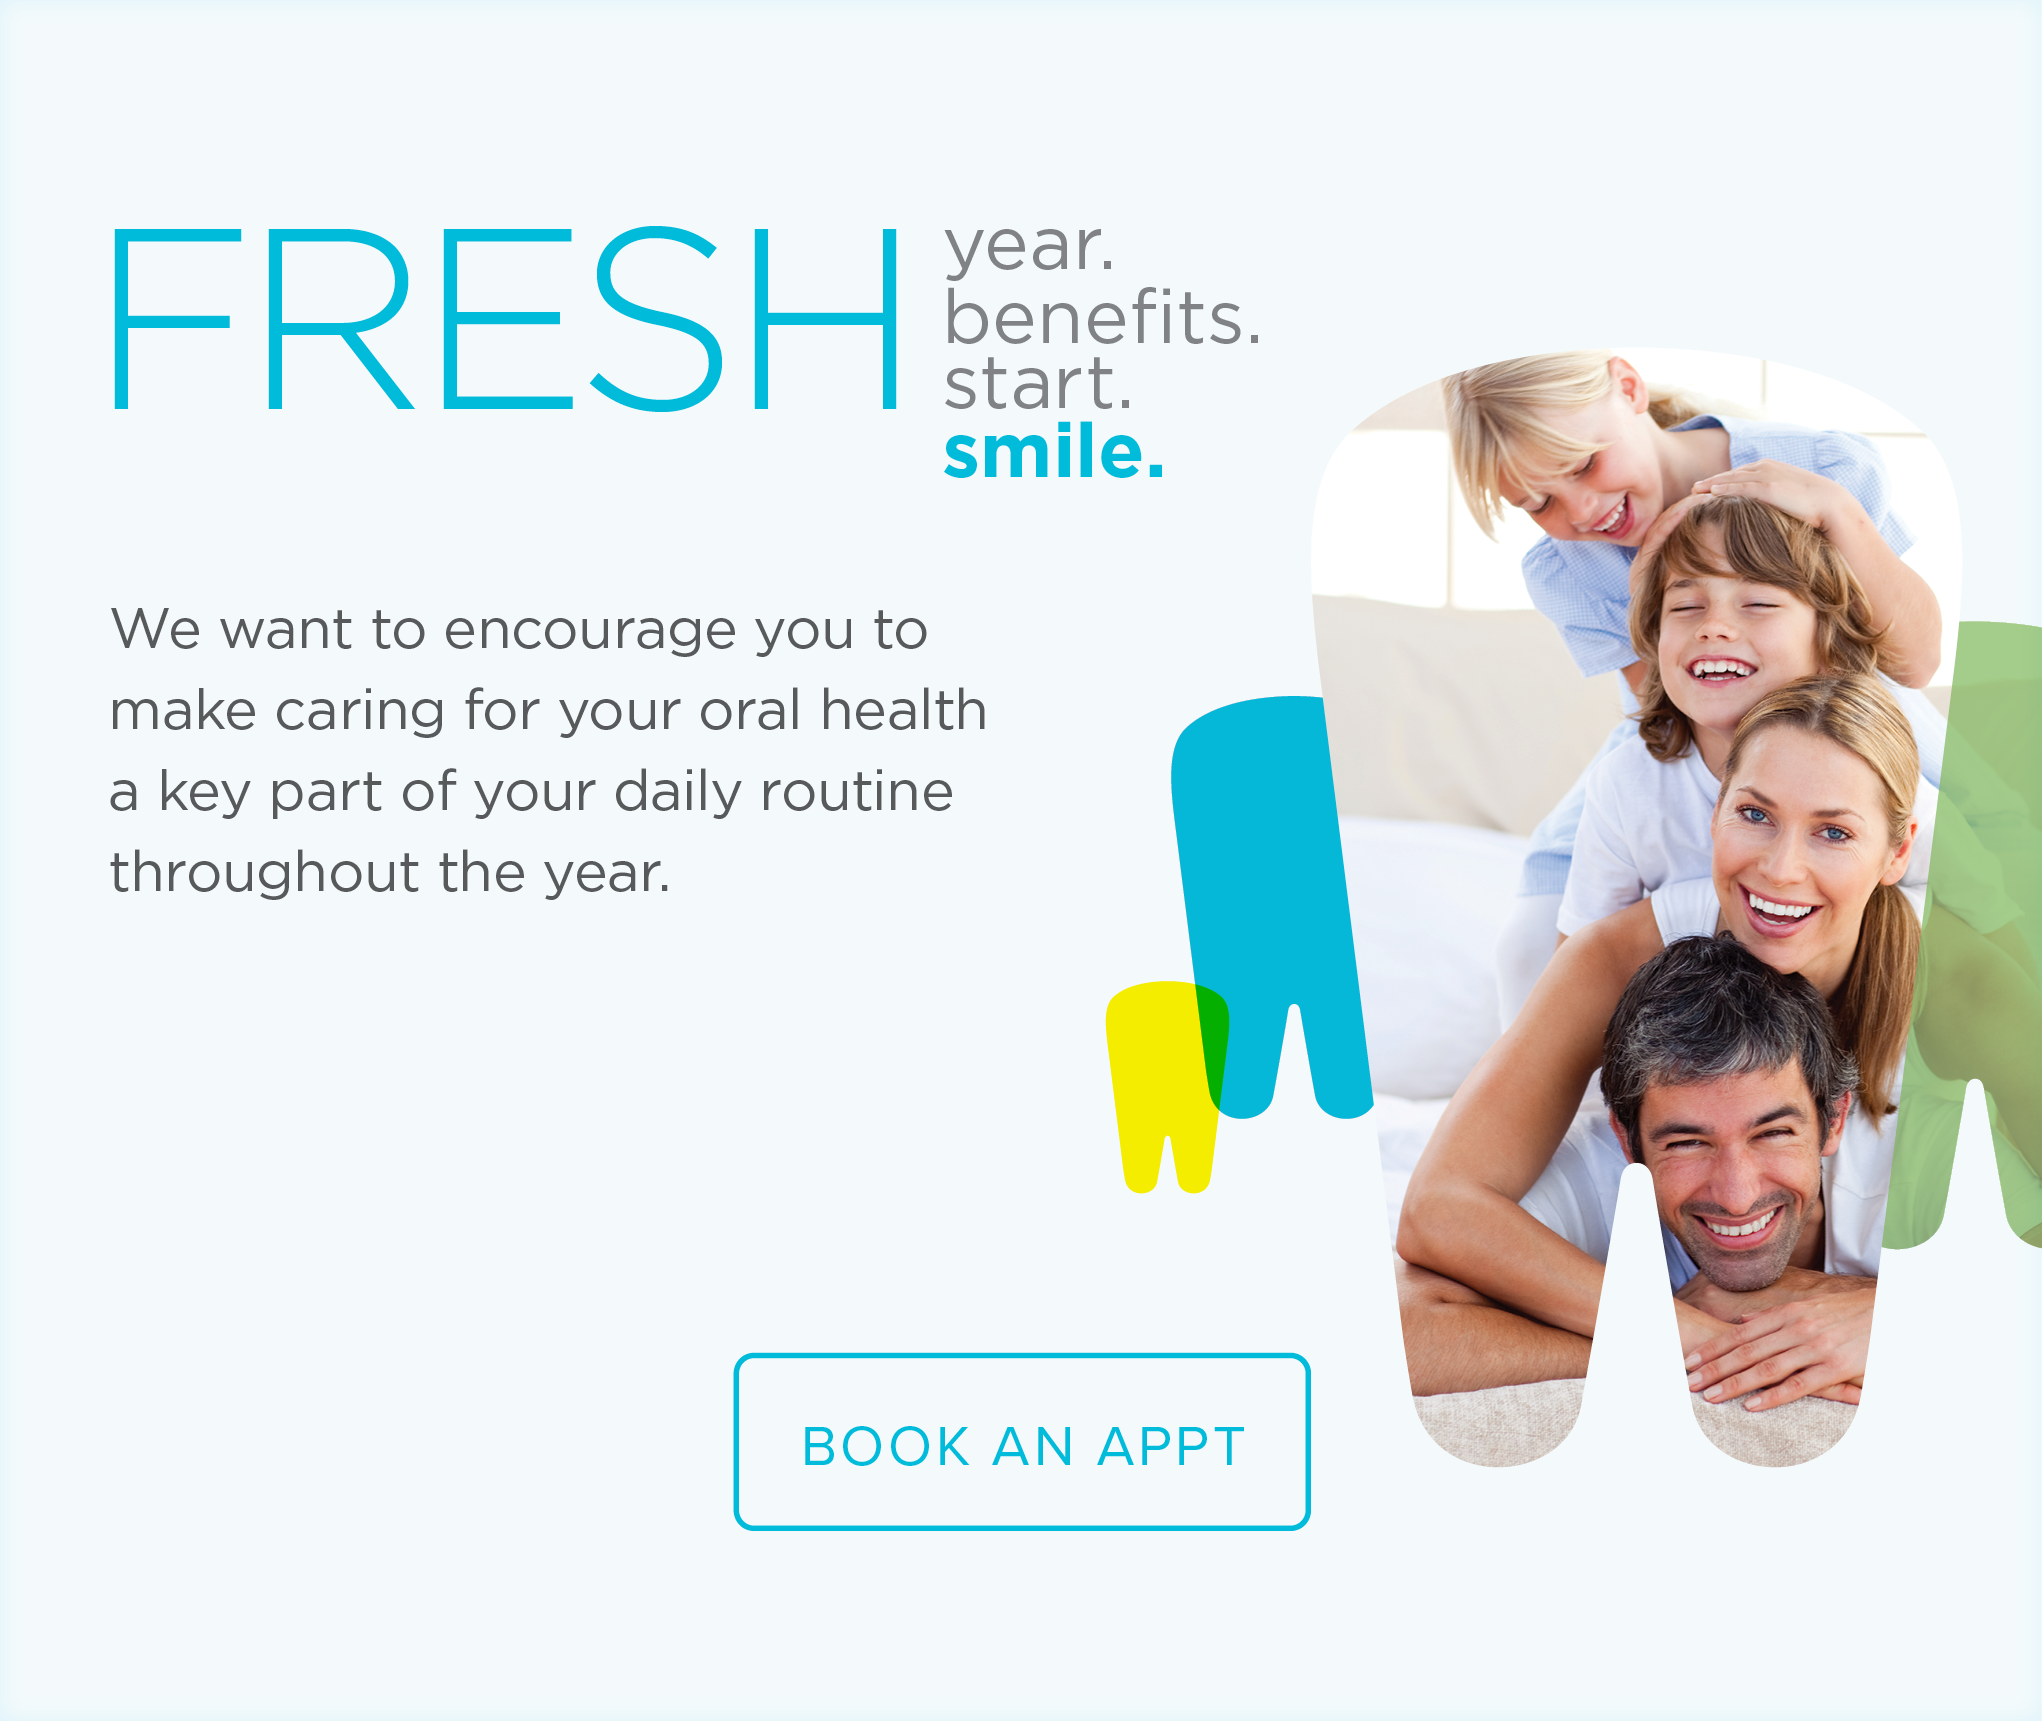 Prescott Modern Dentistry and Orthodontics - Make the Most of Your Benefits